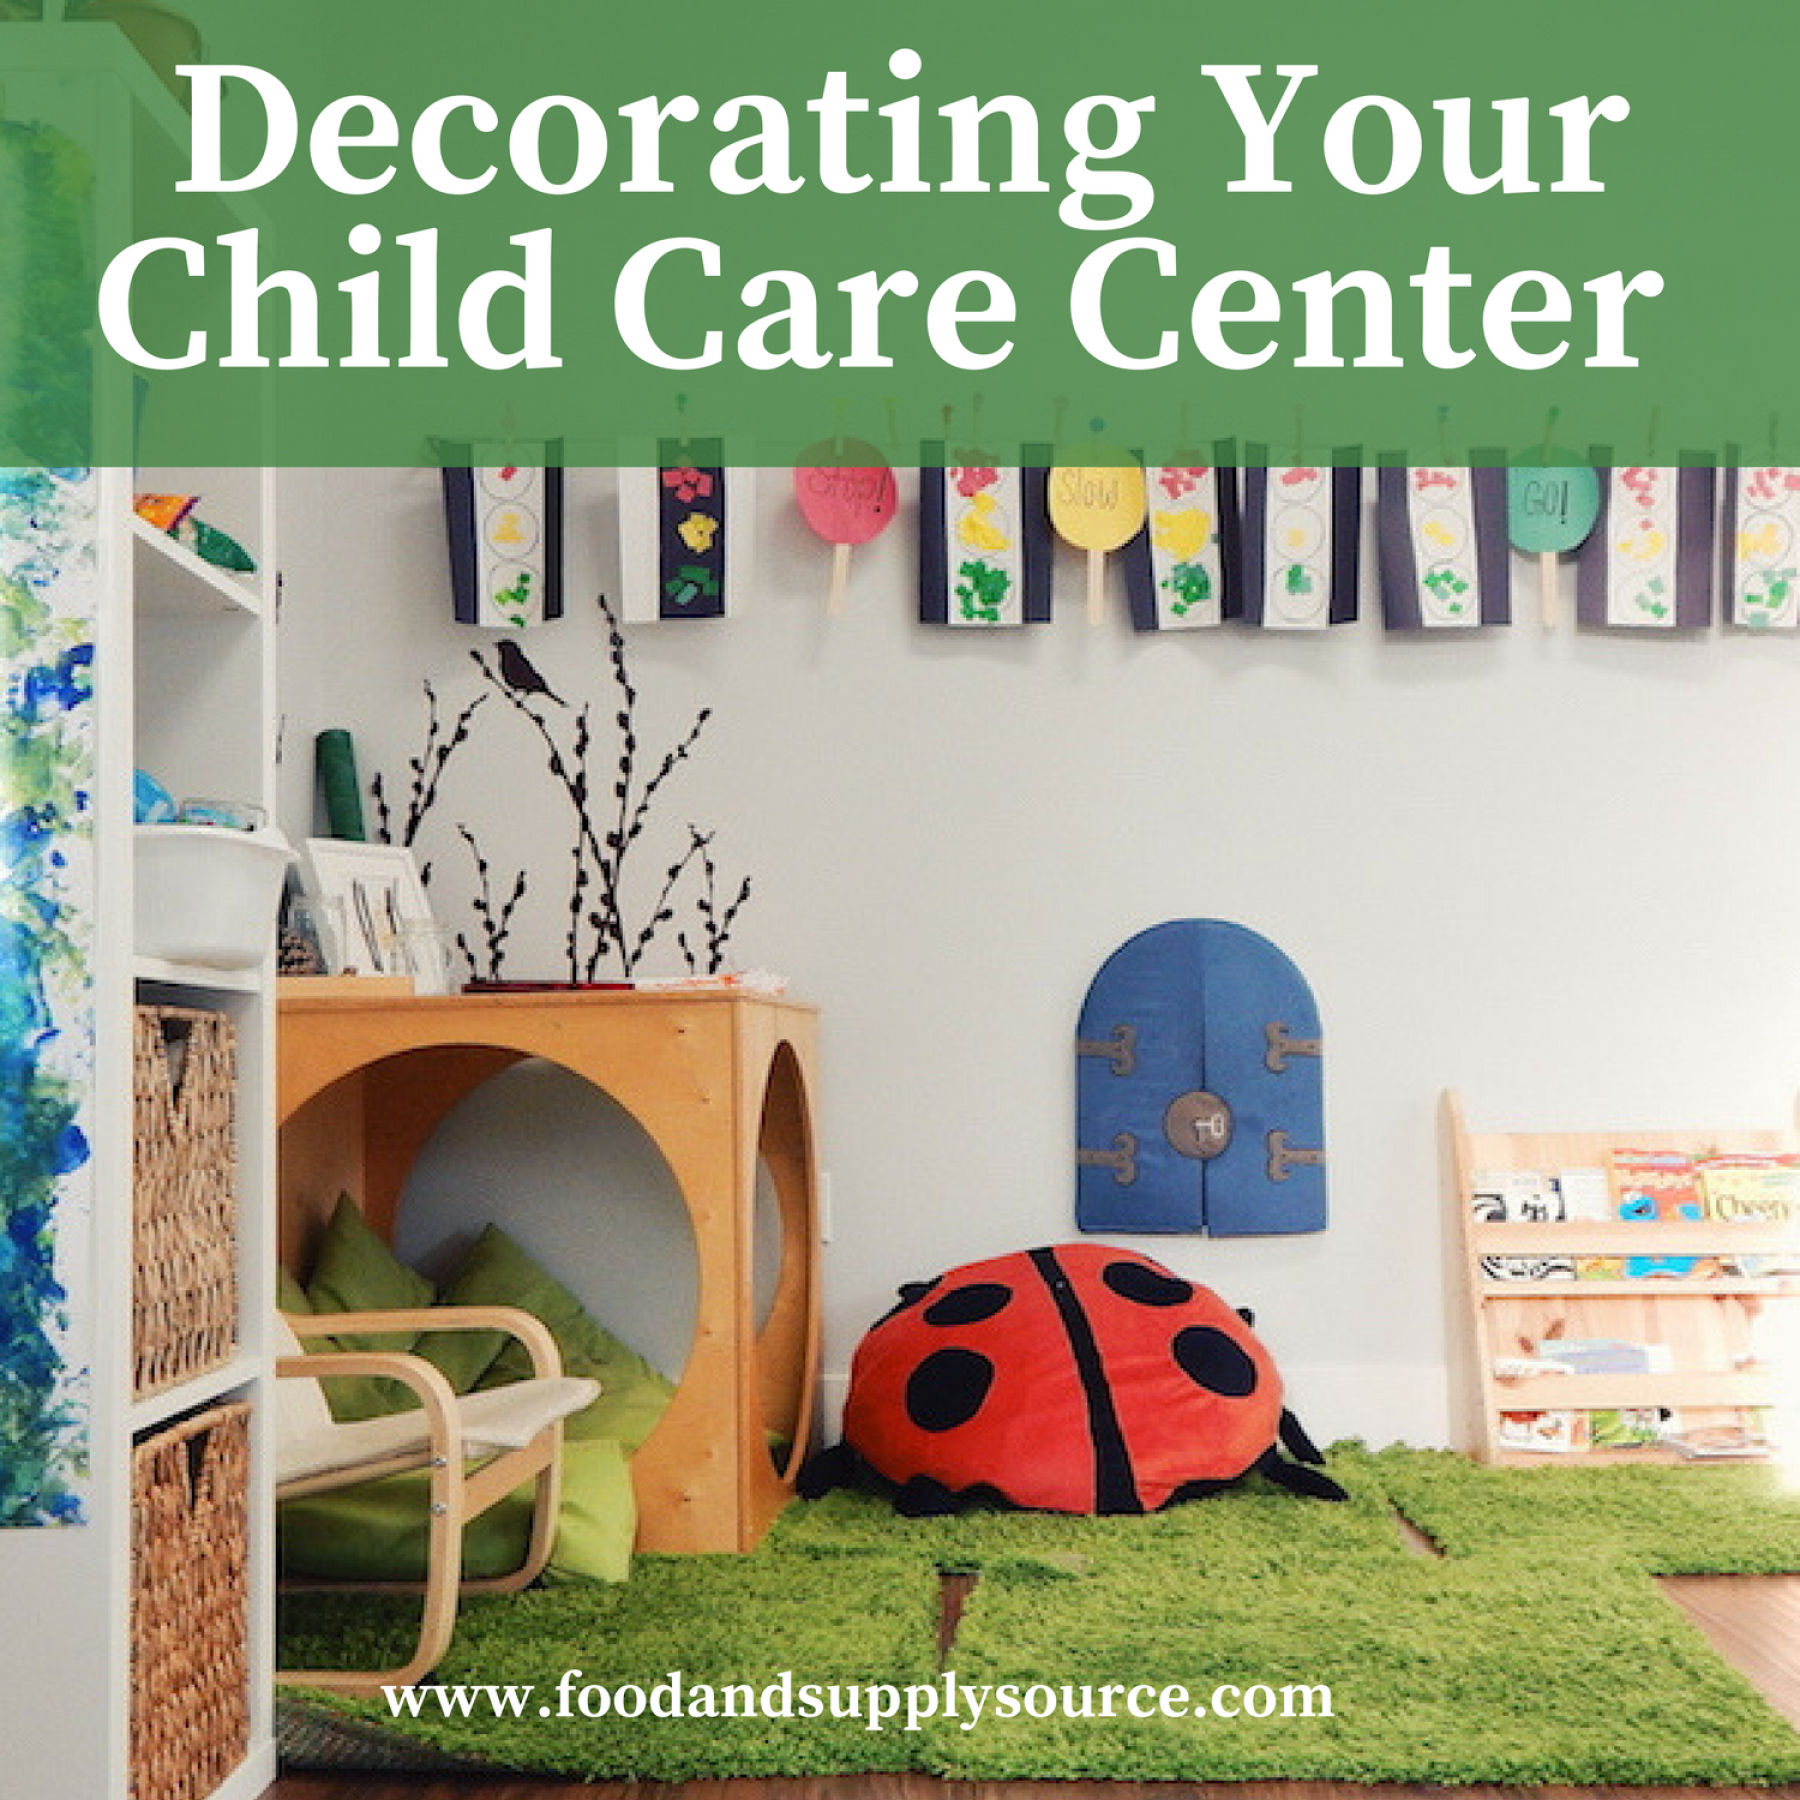 Decorating Your Child Care Center